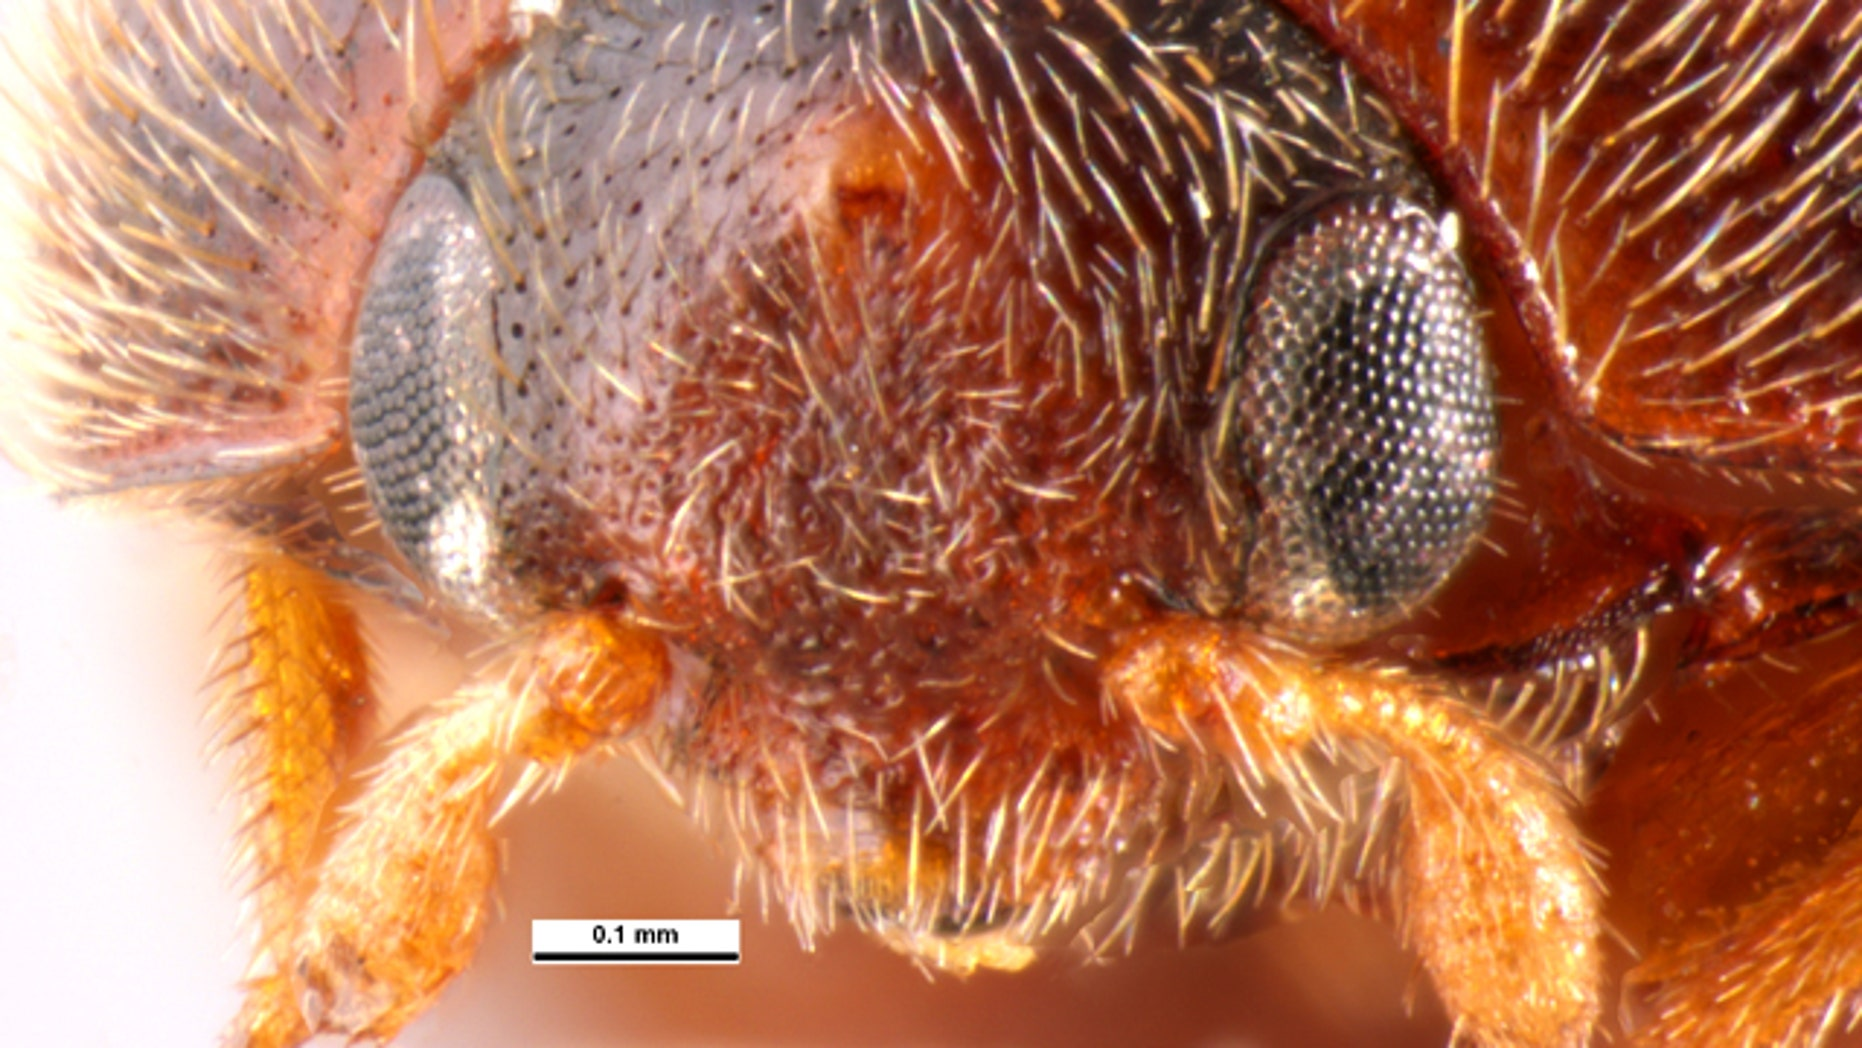 The khapra beetle, one of the world's most destructive invasive insects.